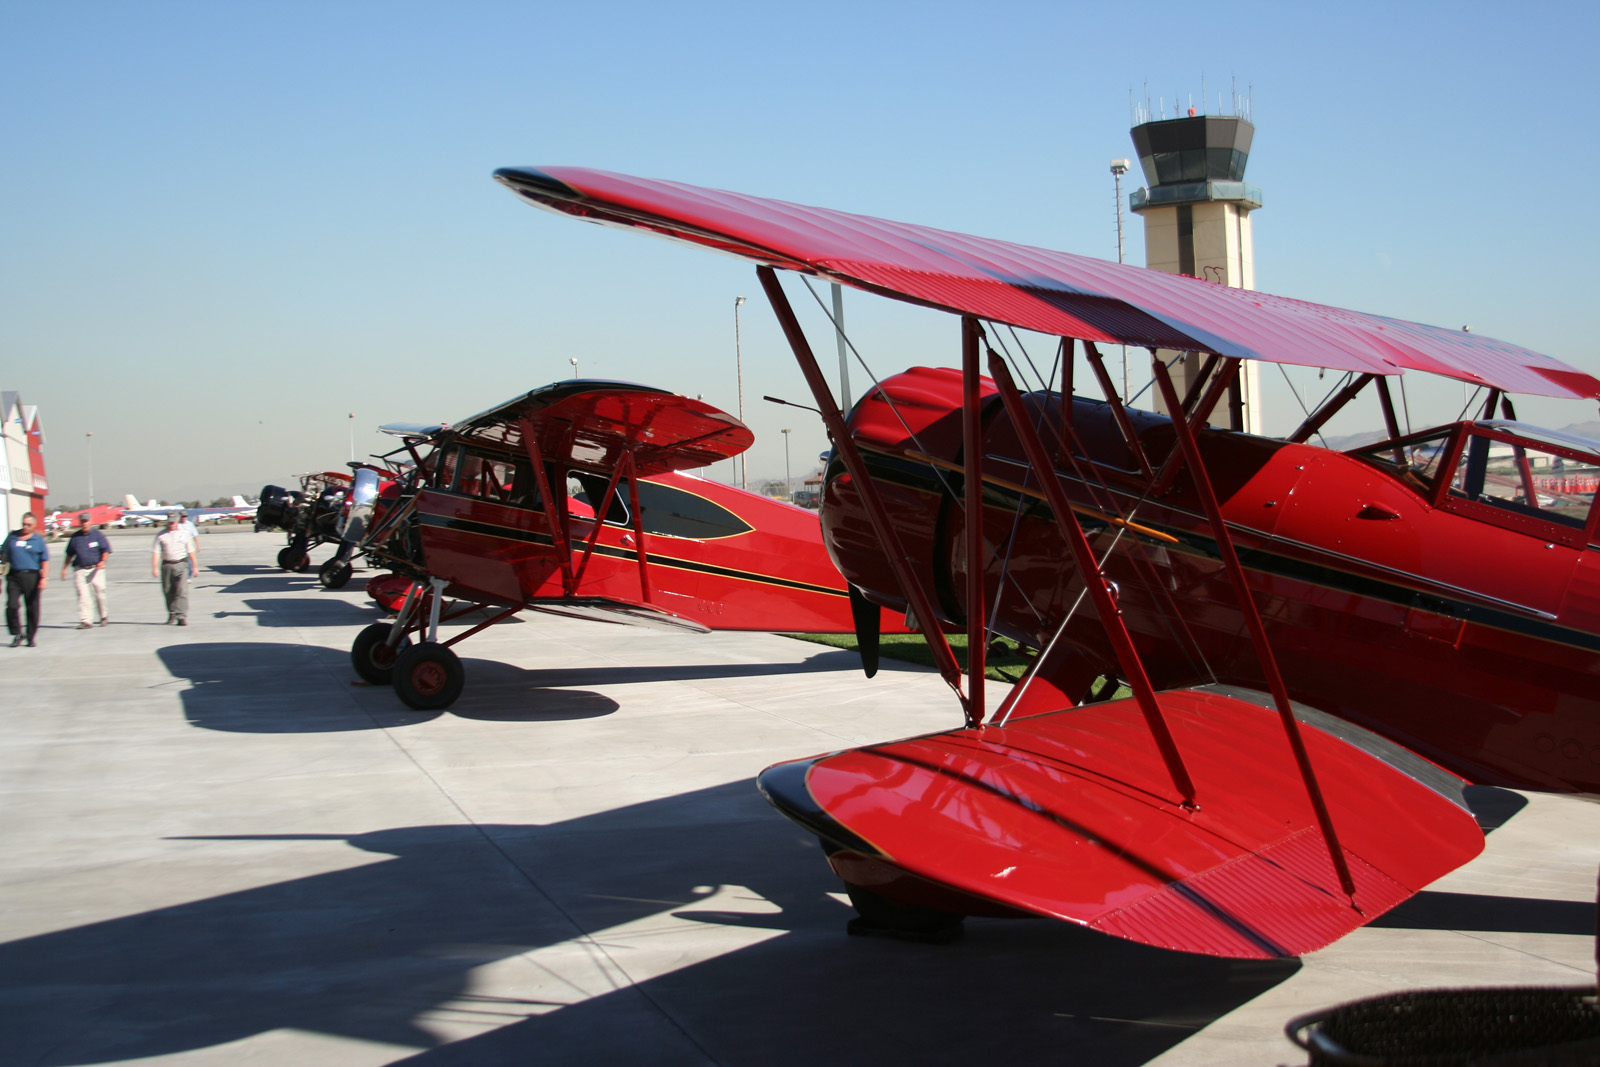 19th Annual Western Waco Association Fly-In